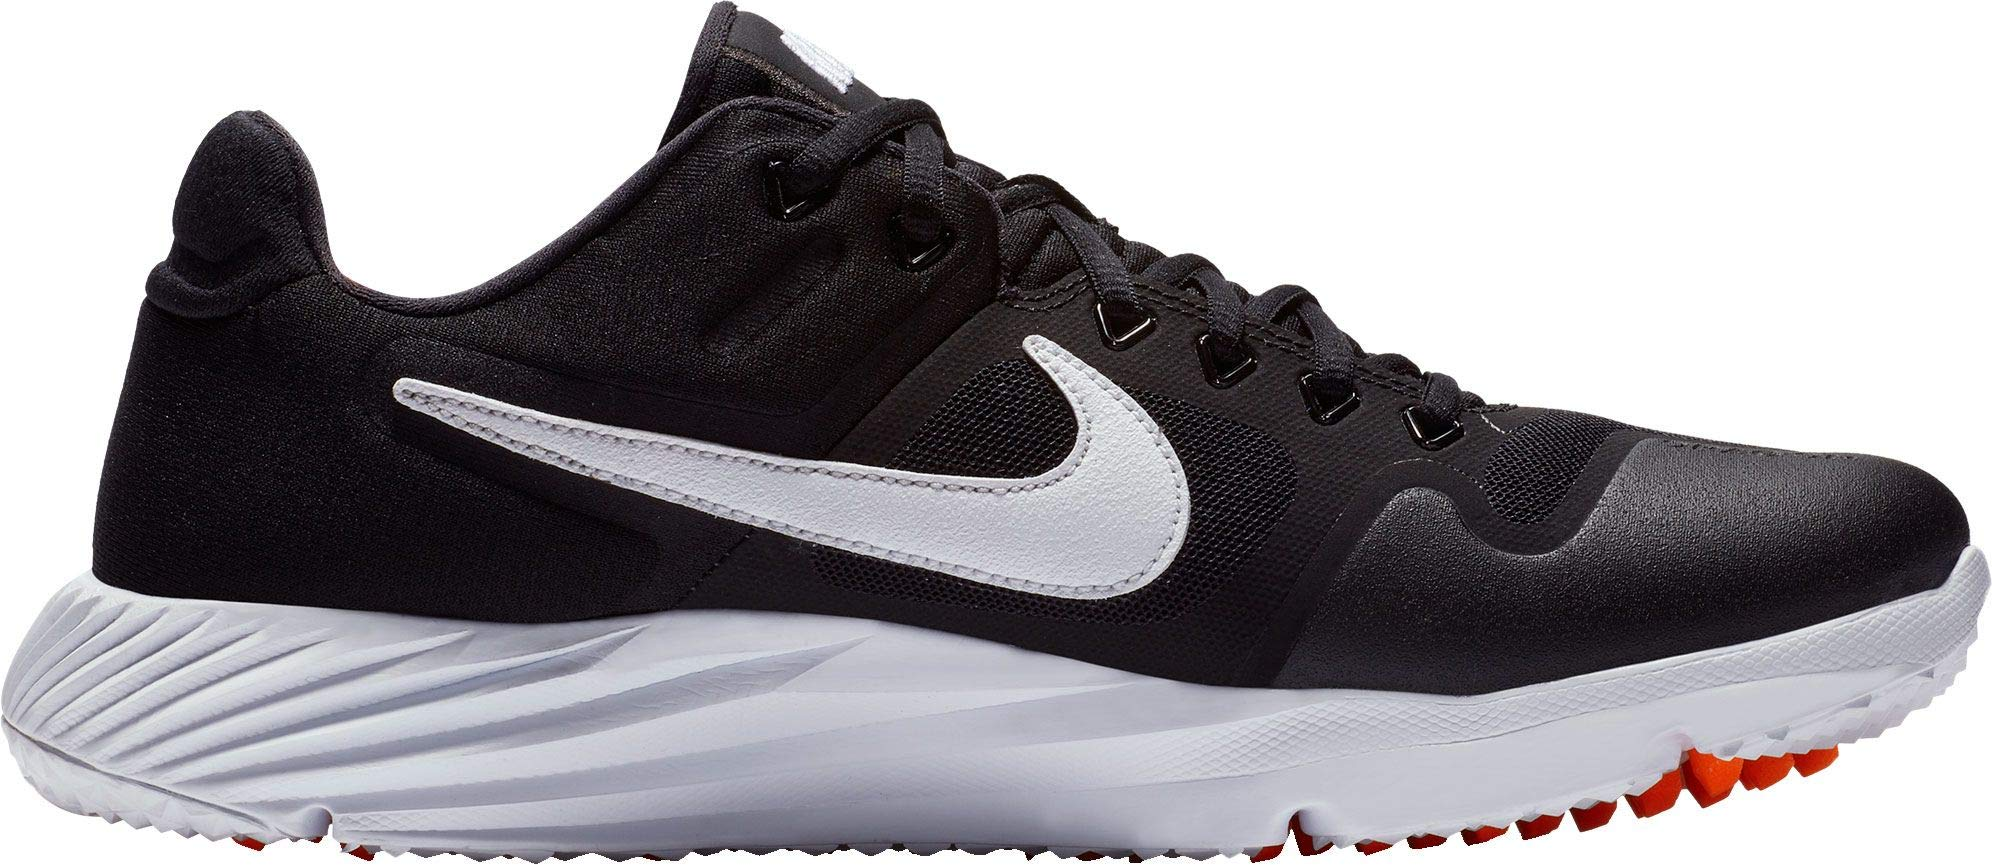 Nike Men's Alpha Huarache Elite 2 Turf Baseball Cleats (10.5, Black/White) by Nike